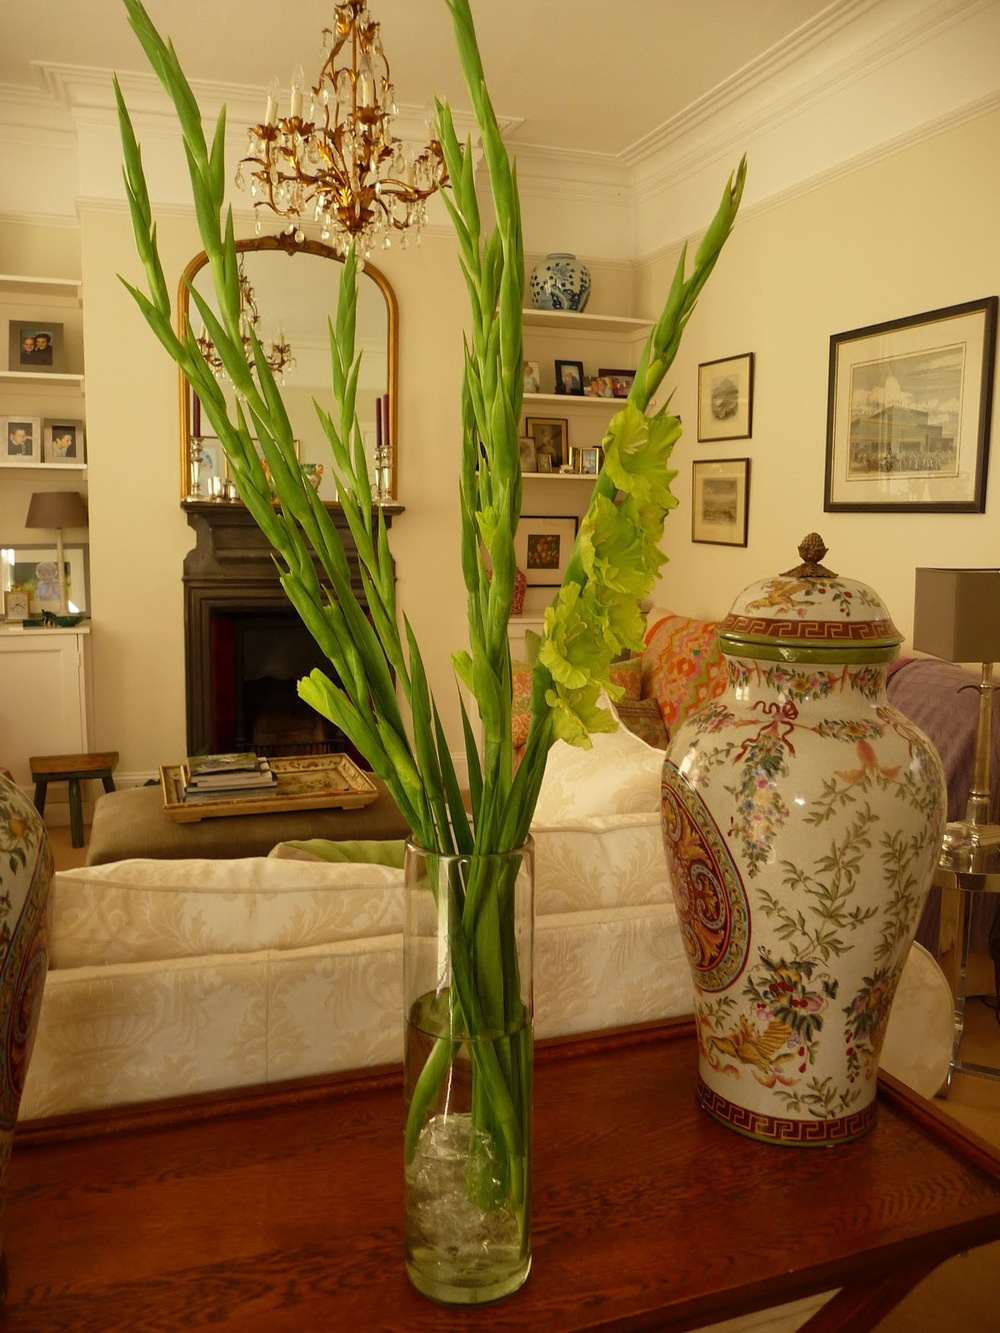 This bunch cost £2.99 and I'll get a week out of them - keeping direct sunlight off them. Love the lime green colour and the tall thin shape of them contrasts well with the large round chinese vases.